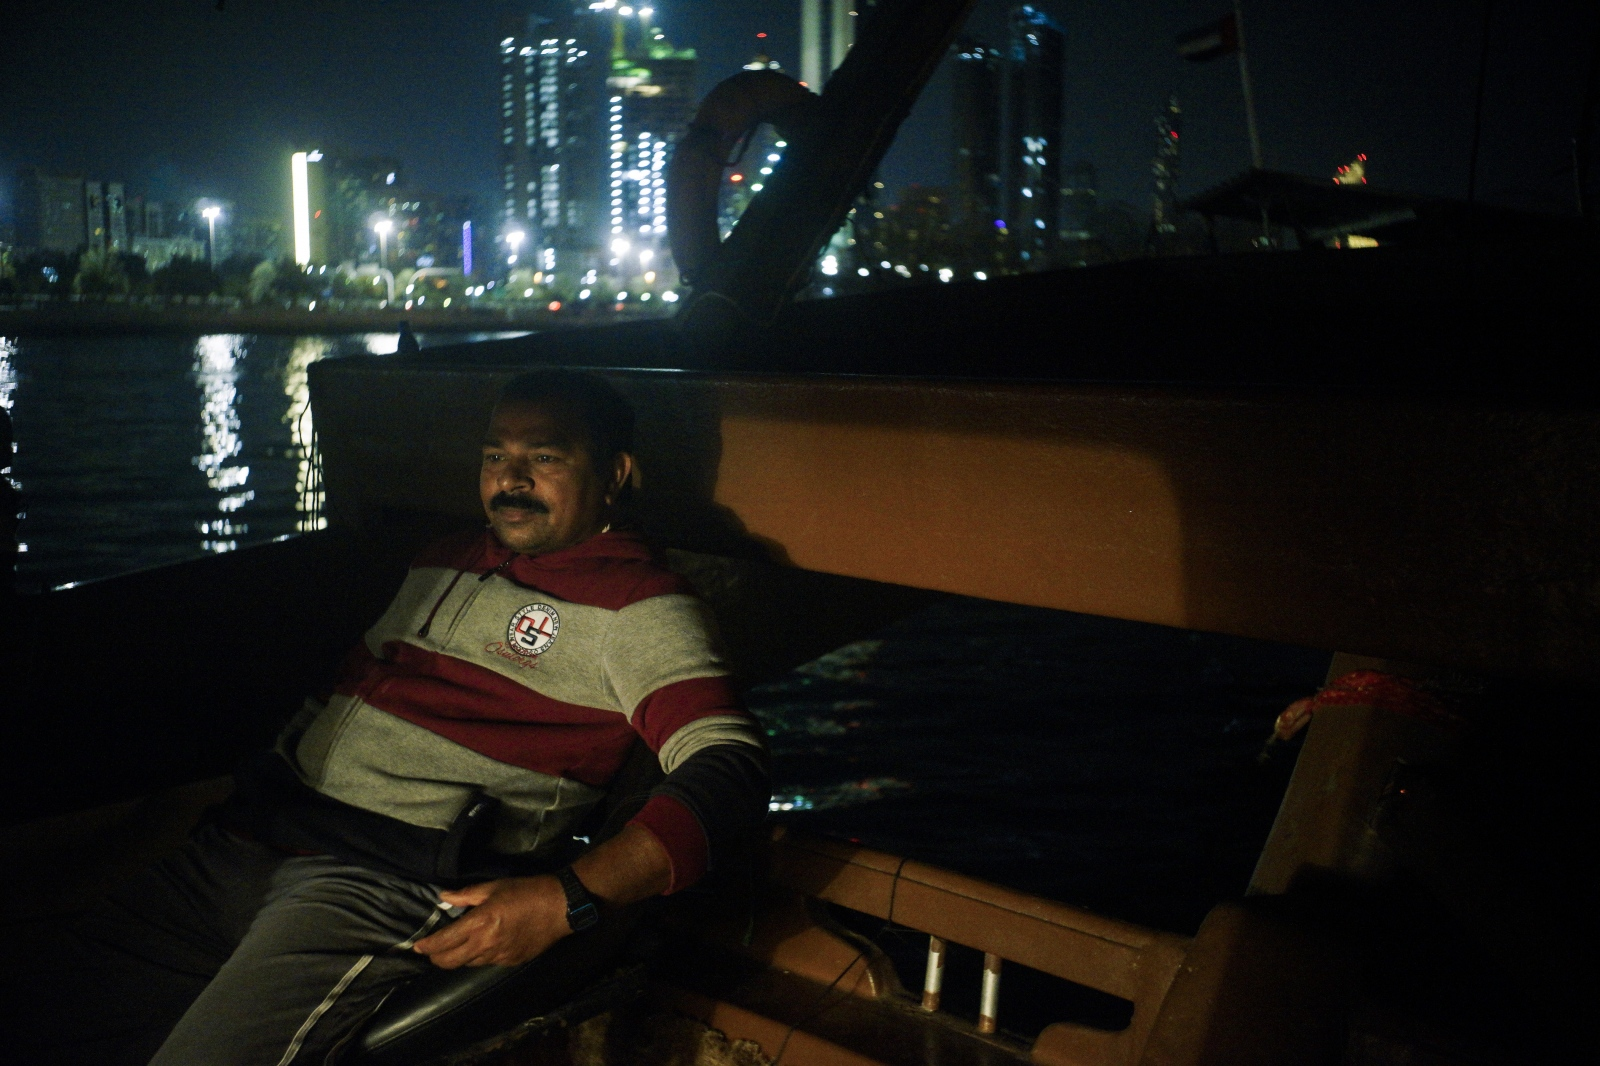 Eddy Krishna is the captain of this wooden trawler, but an Emirati owns the boat. The owner claims half of what the five fishermen catch out at sea. Rising operational and equipment costs worry Eddy Krishna.